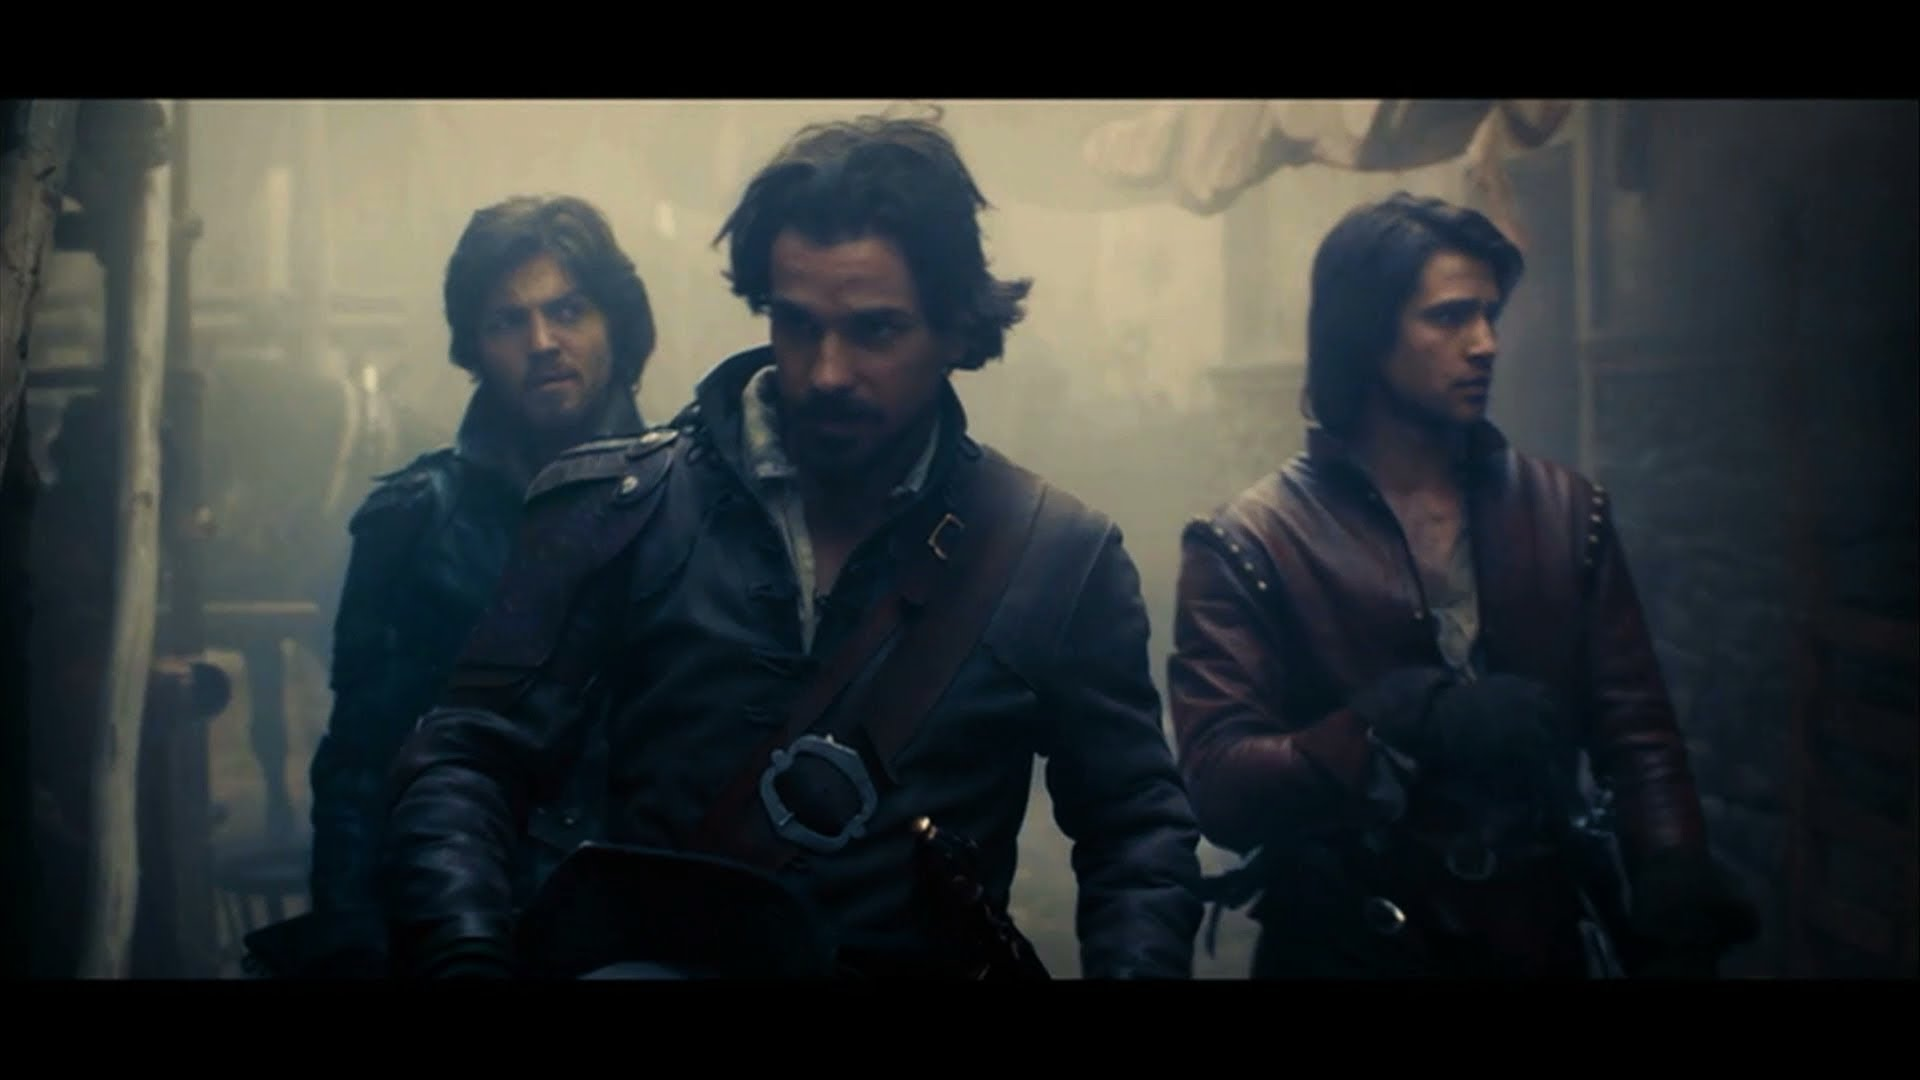 Trailer: THE MUSKETEERS